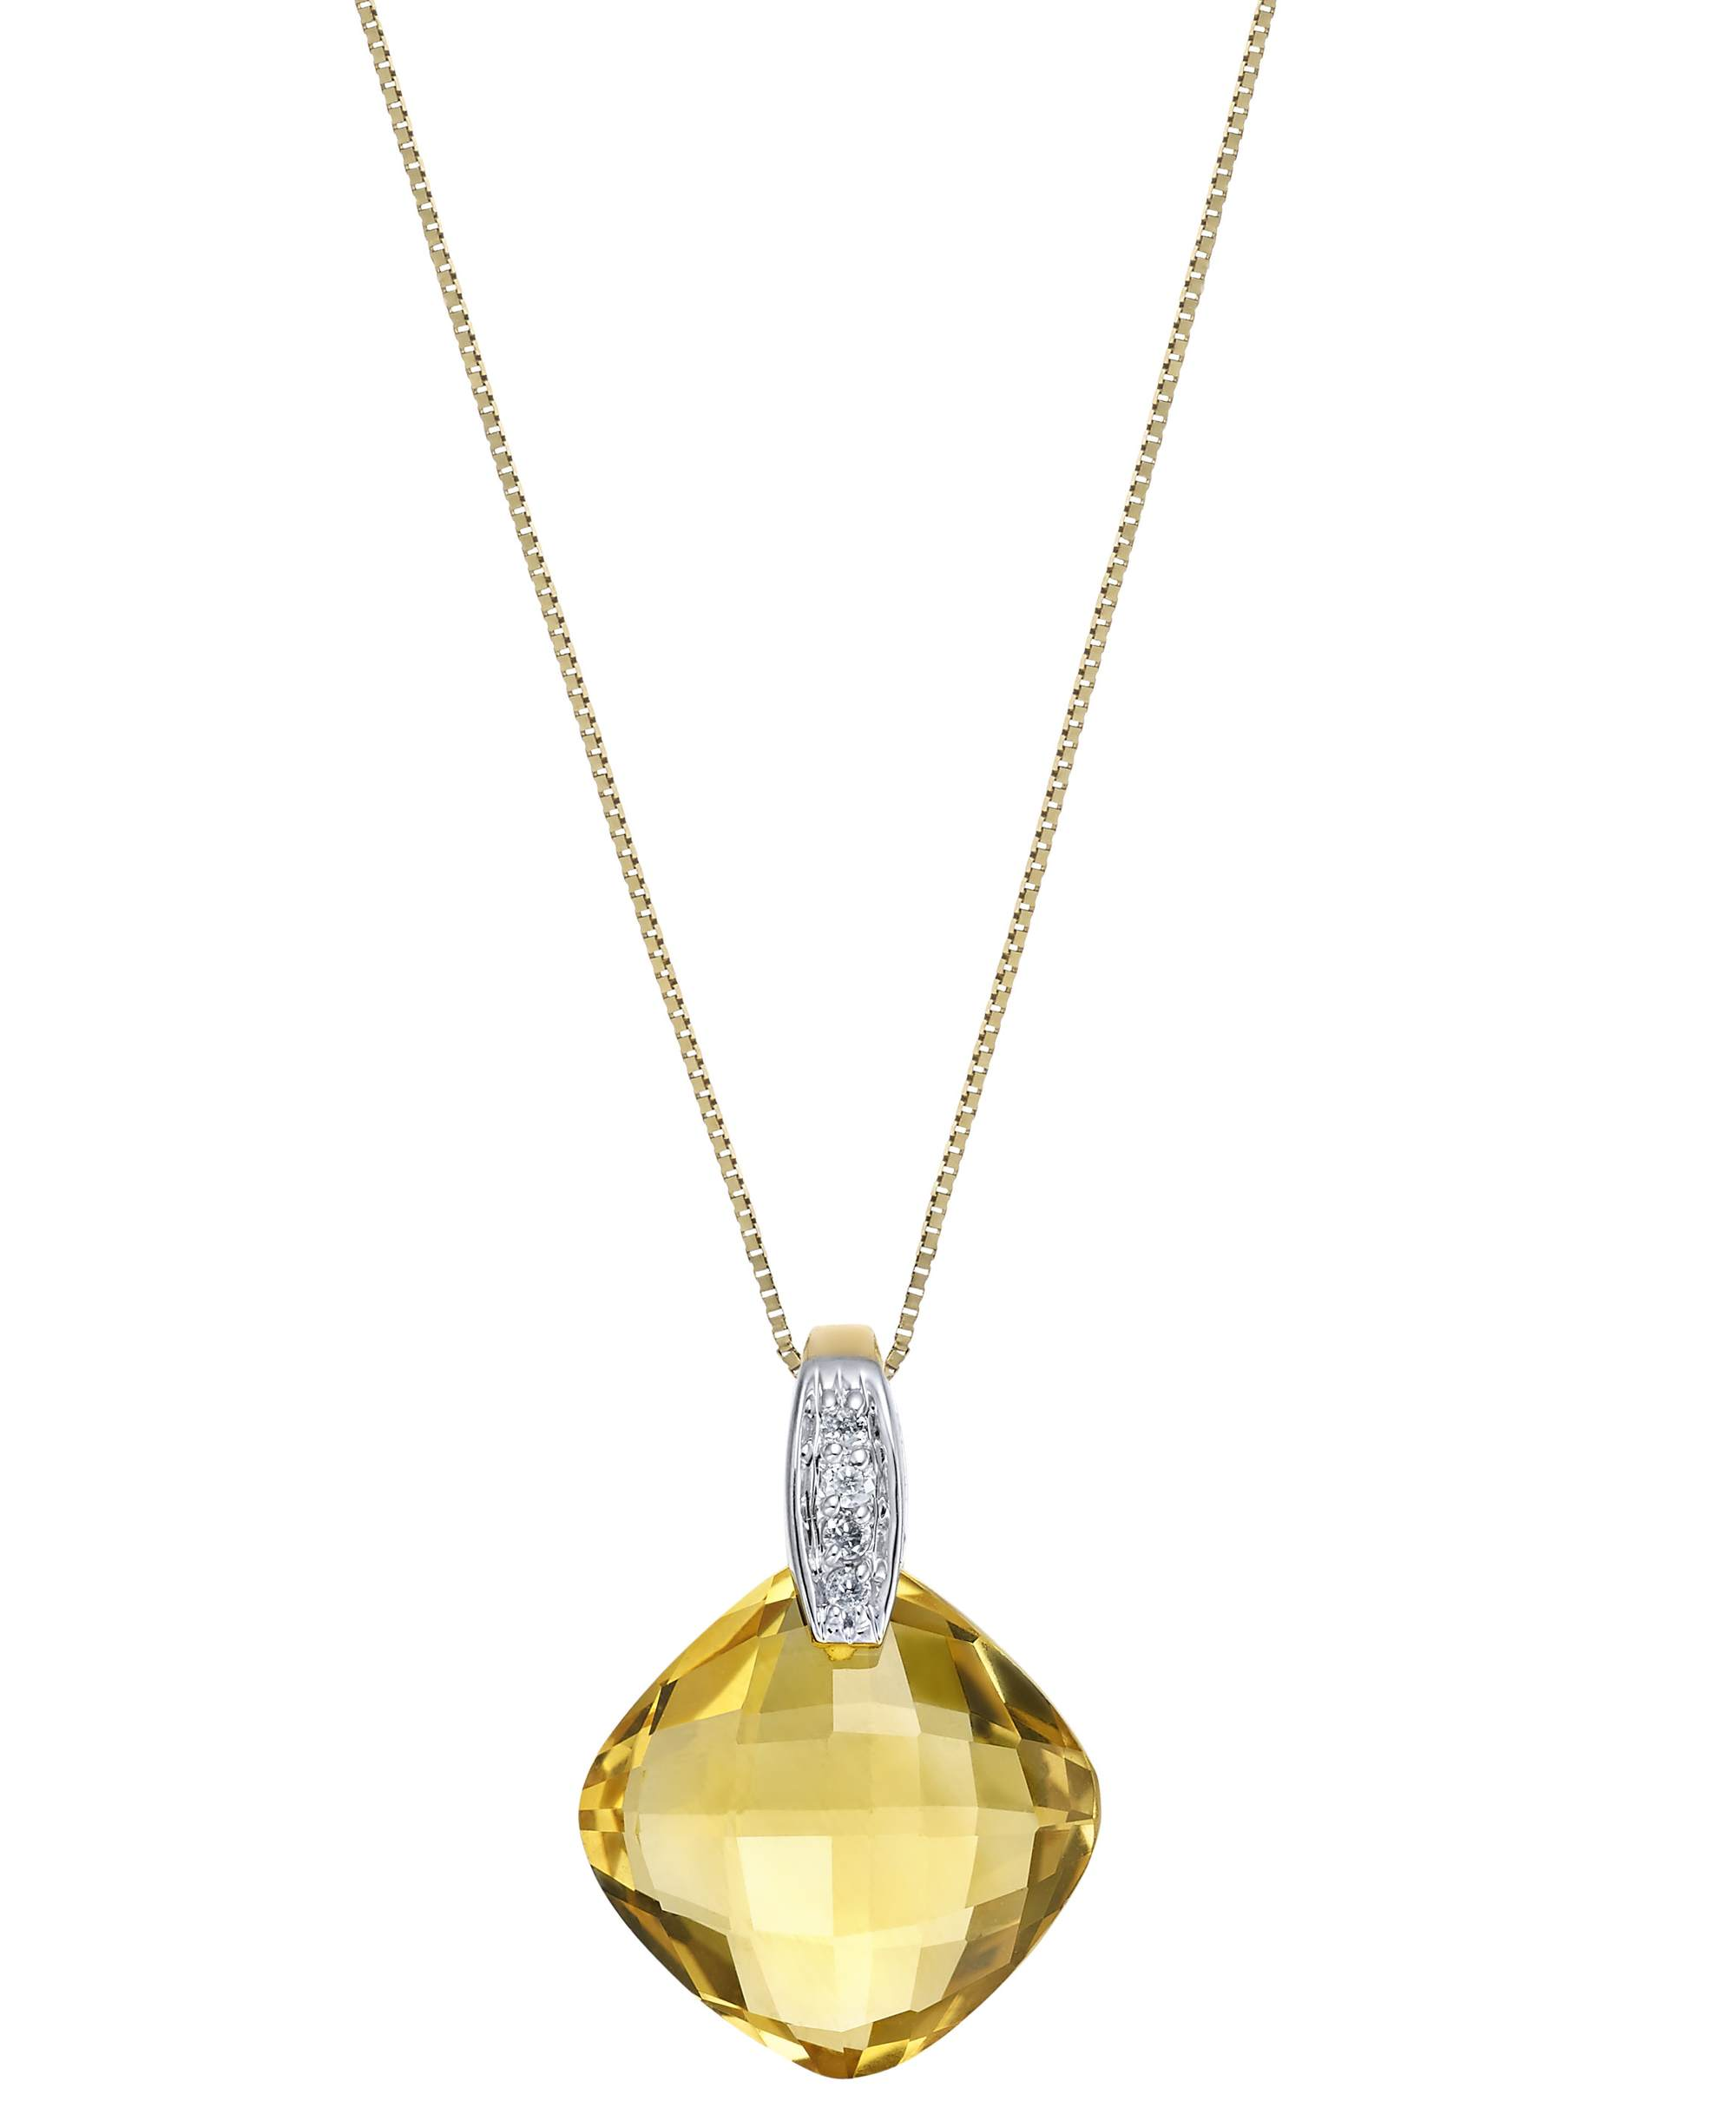 citrine_finejewelry_necklacespicture.jpg